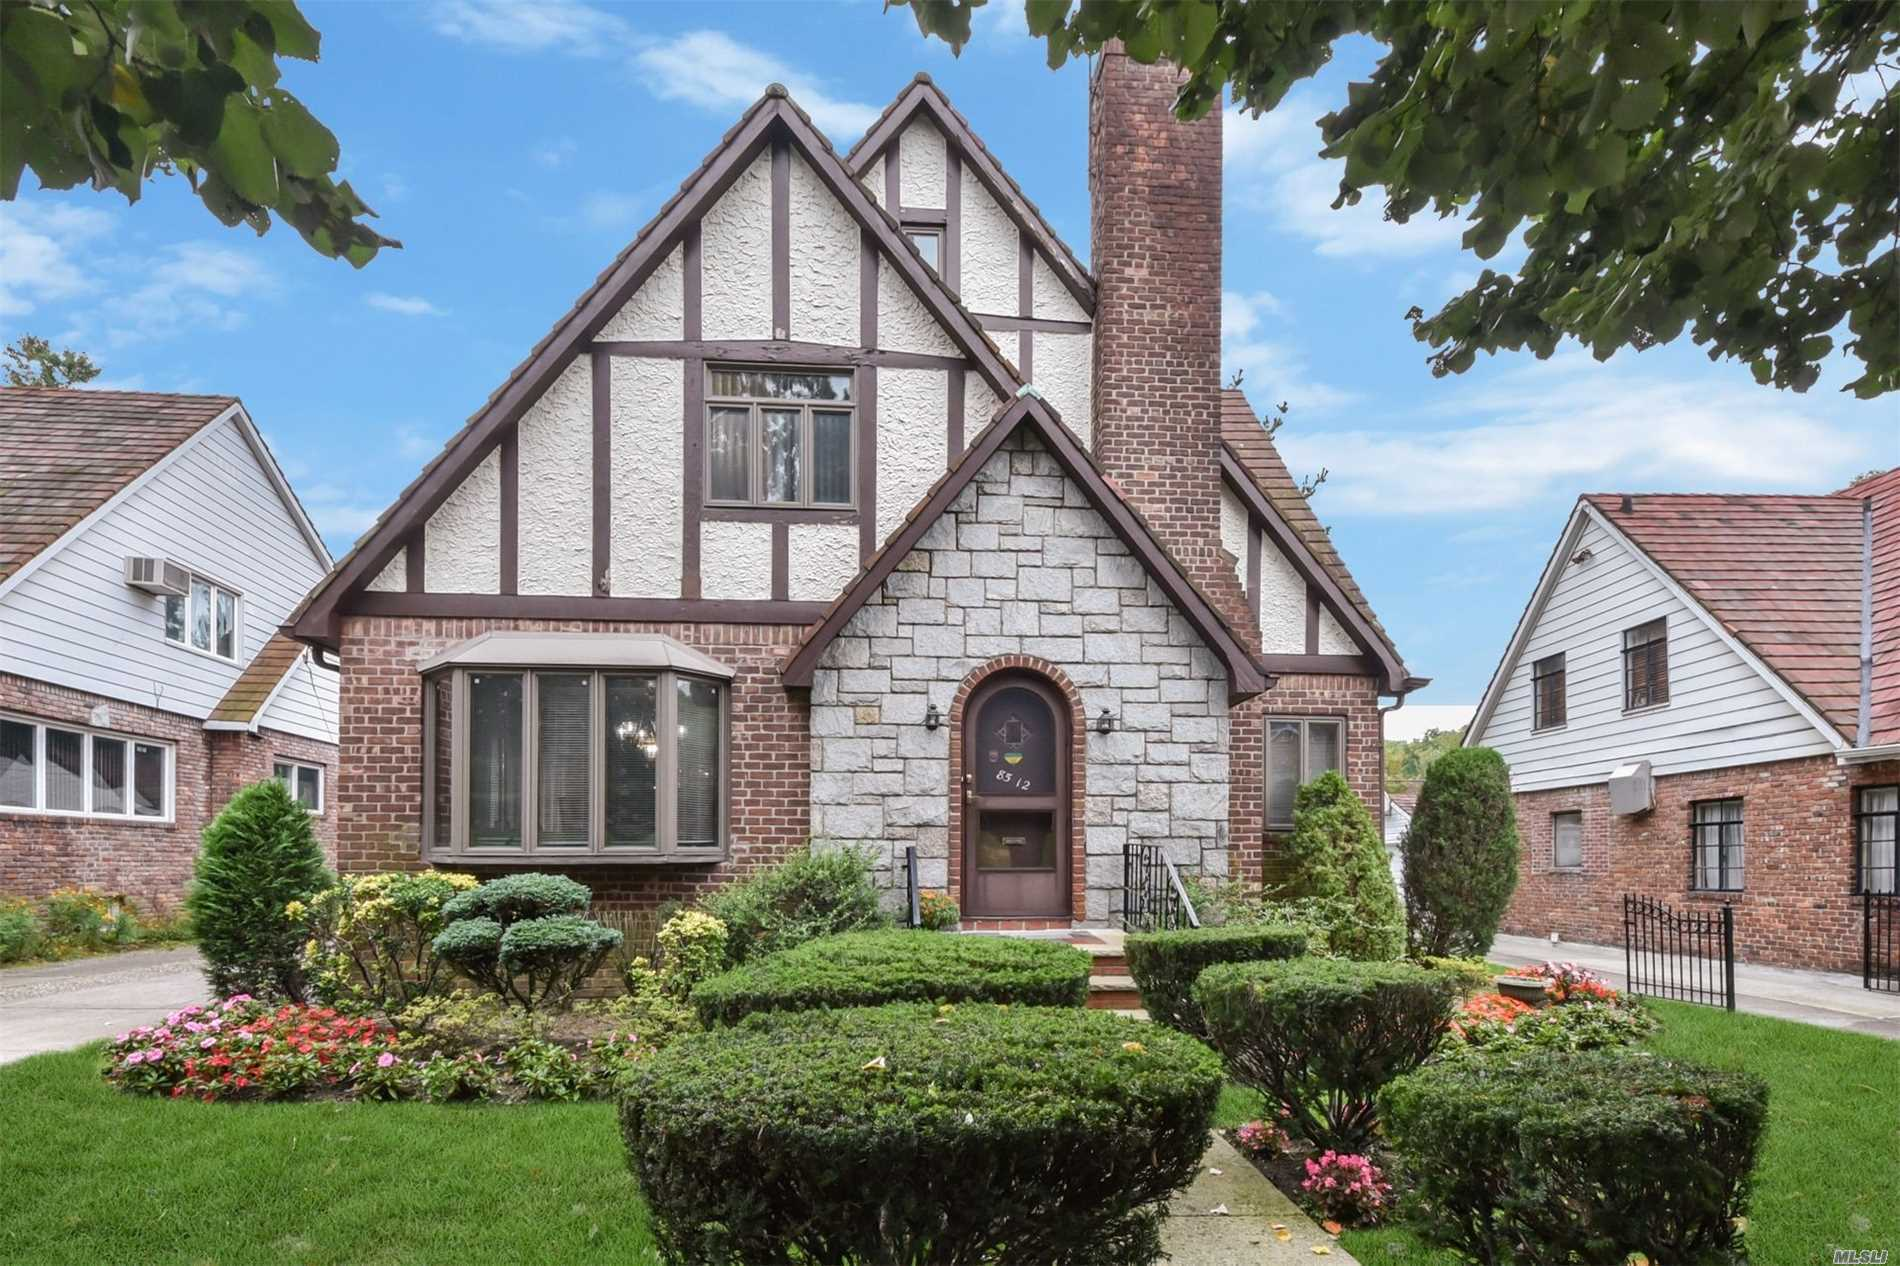 Beautiful Center Hall Tudor House Located In Jamaica Estates On A 50 X 101, 1st Fl Features Lr With Fireplace, Dining Rm, 1 Bedroom, Full Bth, Large Eat-In Kitchen Leading To Backyard. 2nd Fl Offers 3 Bedrooms, 1 Full Bath, Walk-In Closets In Bedroom. Finished Basement With 10 Ft Ceilings. House Has Inground Sprinkler , Cac, Alarm System& Lots Of Closet Space